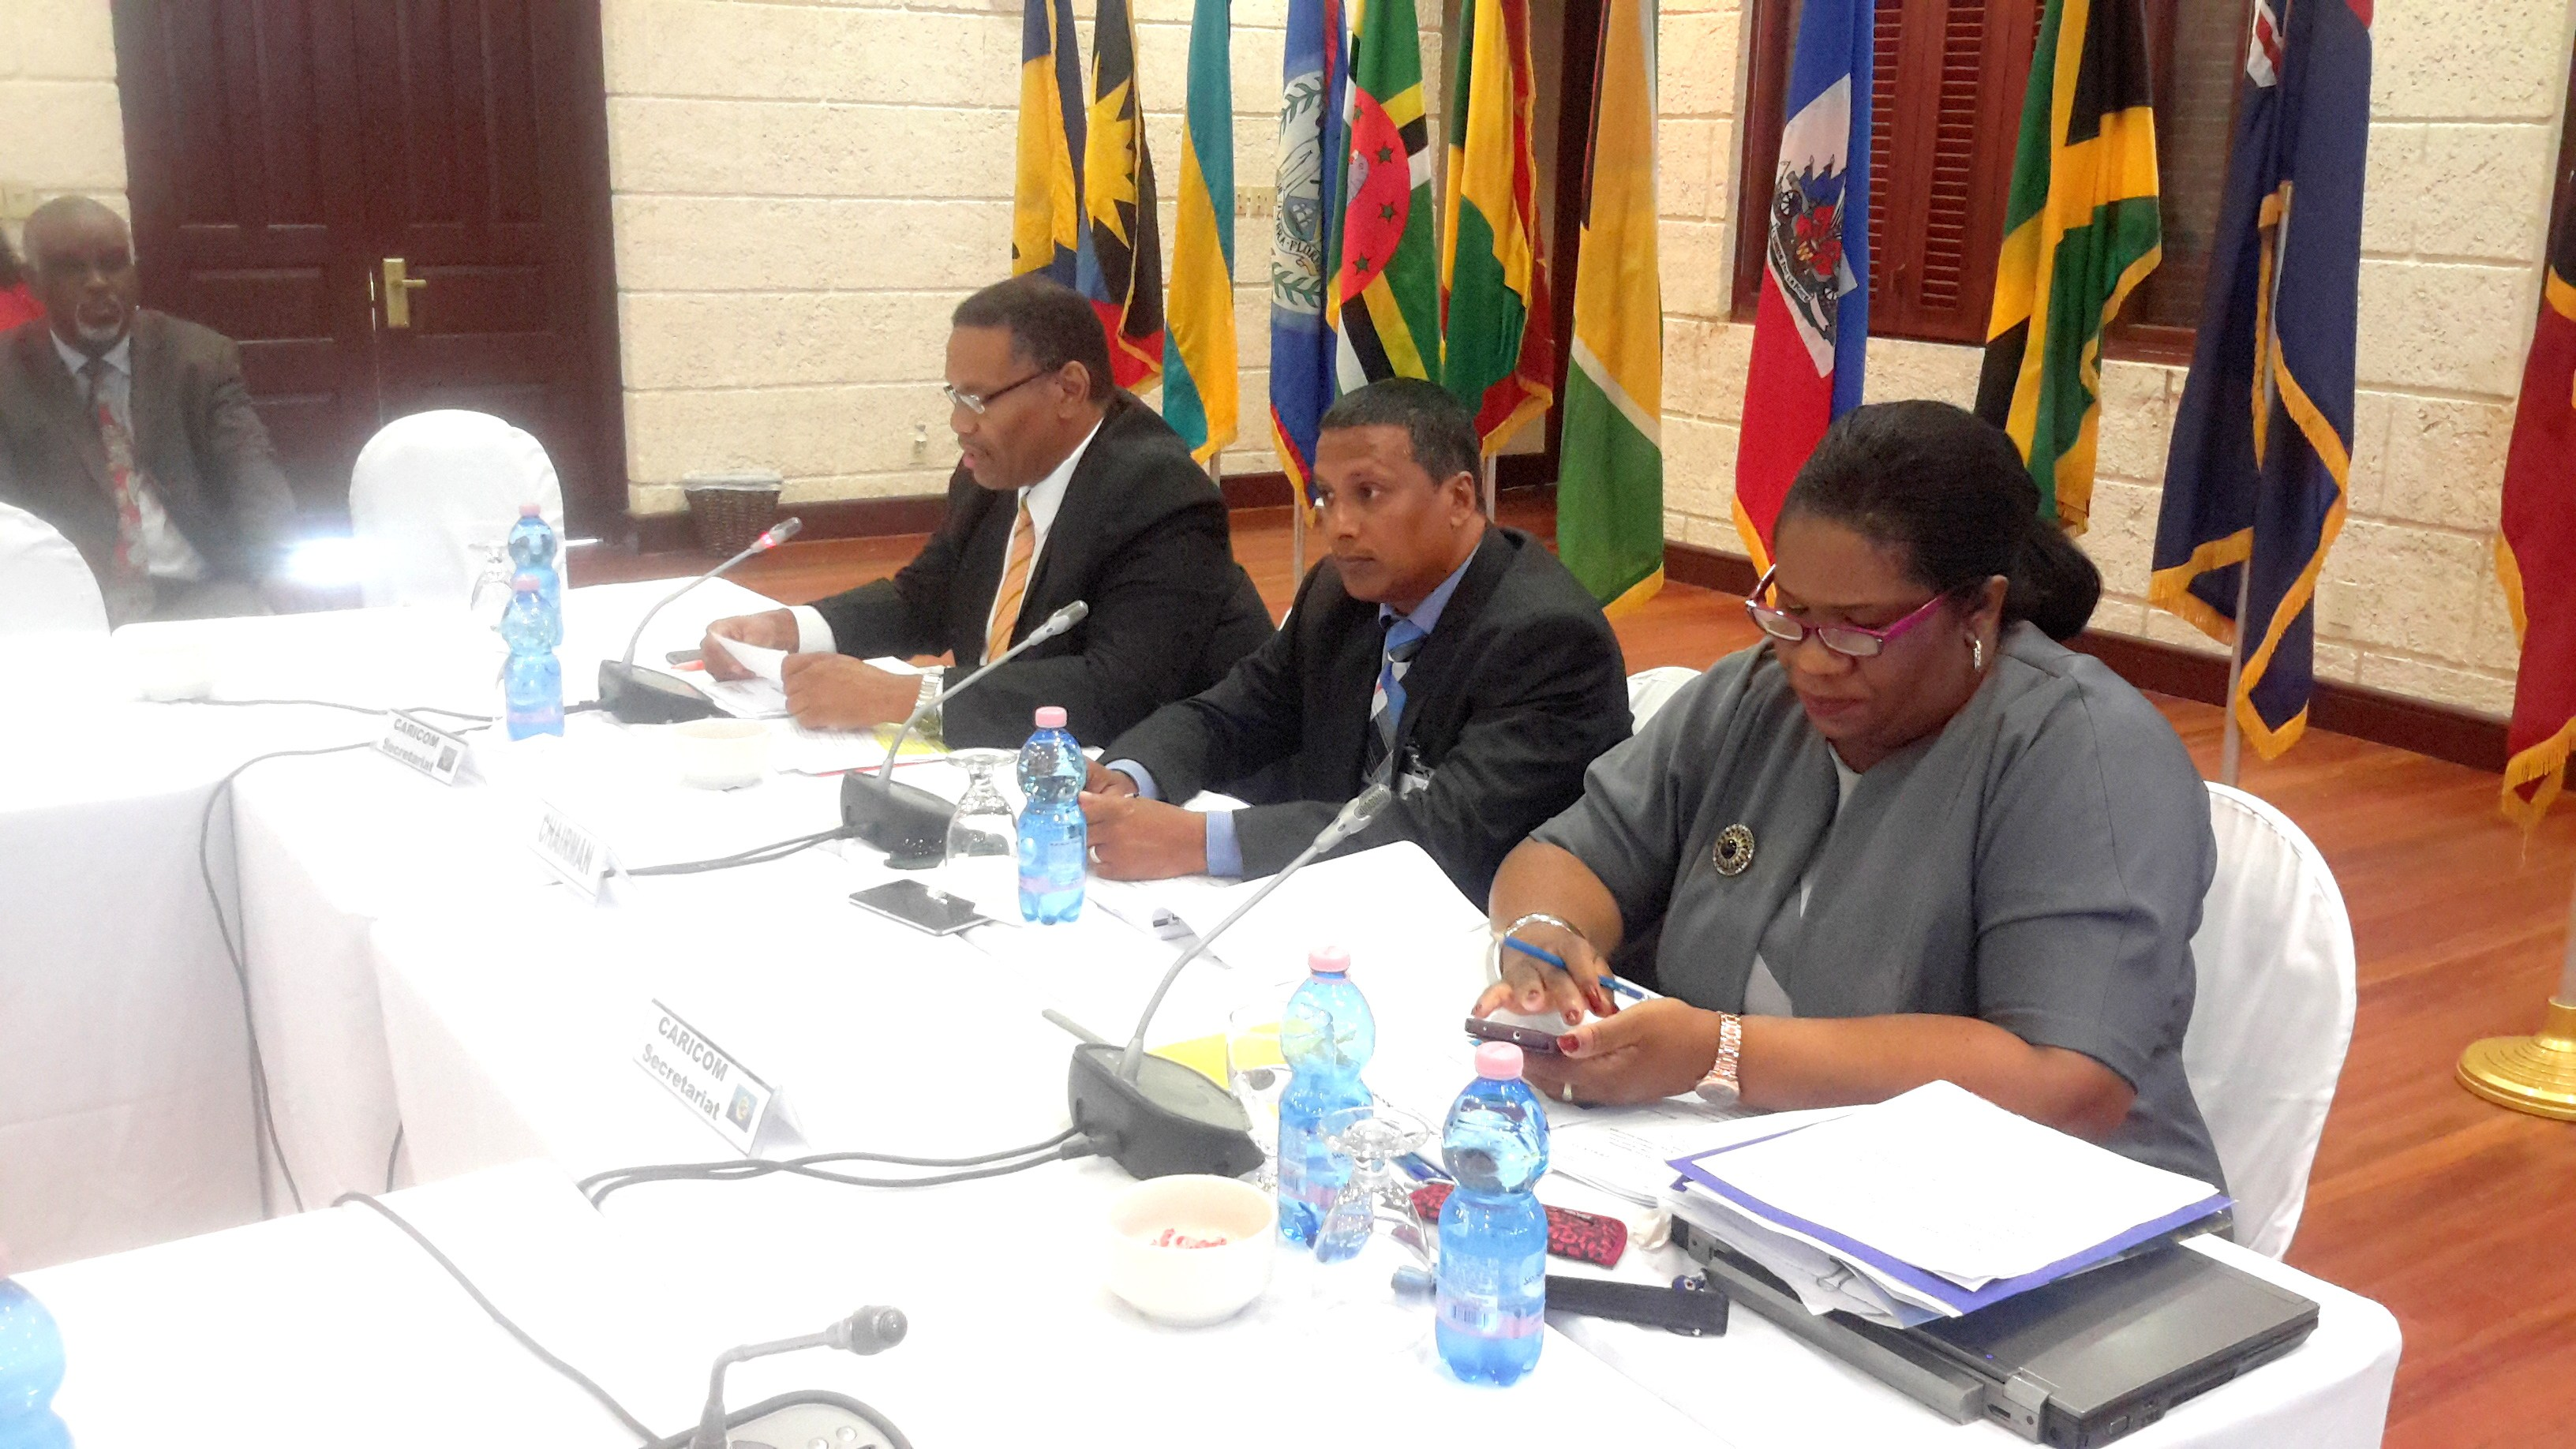 From left, ASG, Trade and Economic Integration, Mr. Joseph Cox, Chair of the Meeting, Minister Guy Joseph and Deputy Programme Manager, ICT4D, CARICOM Secretariat, Ms. Jennifer Britton